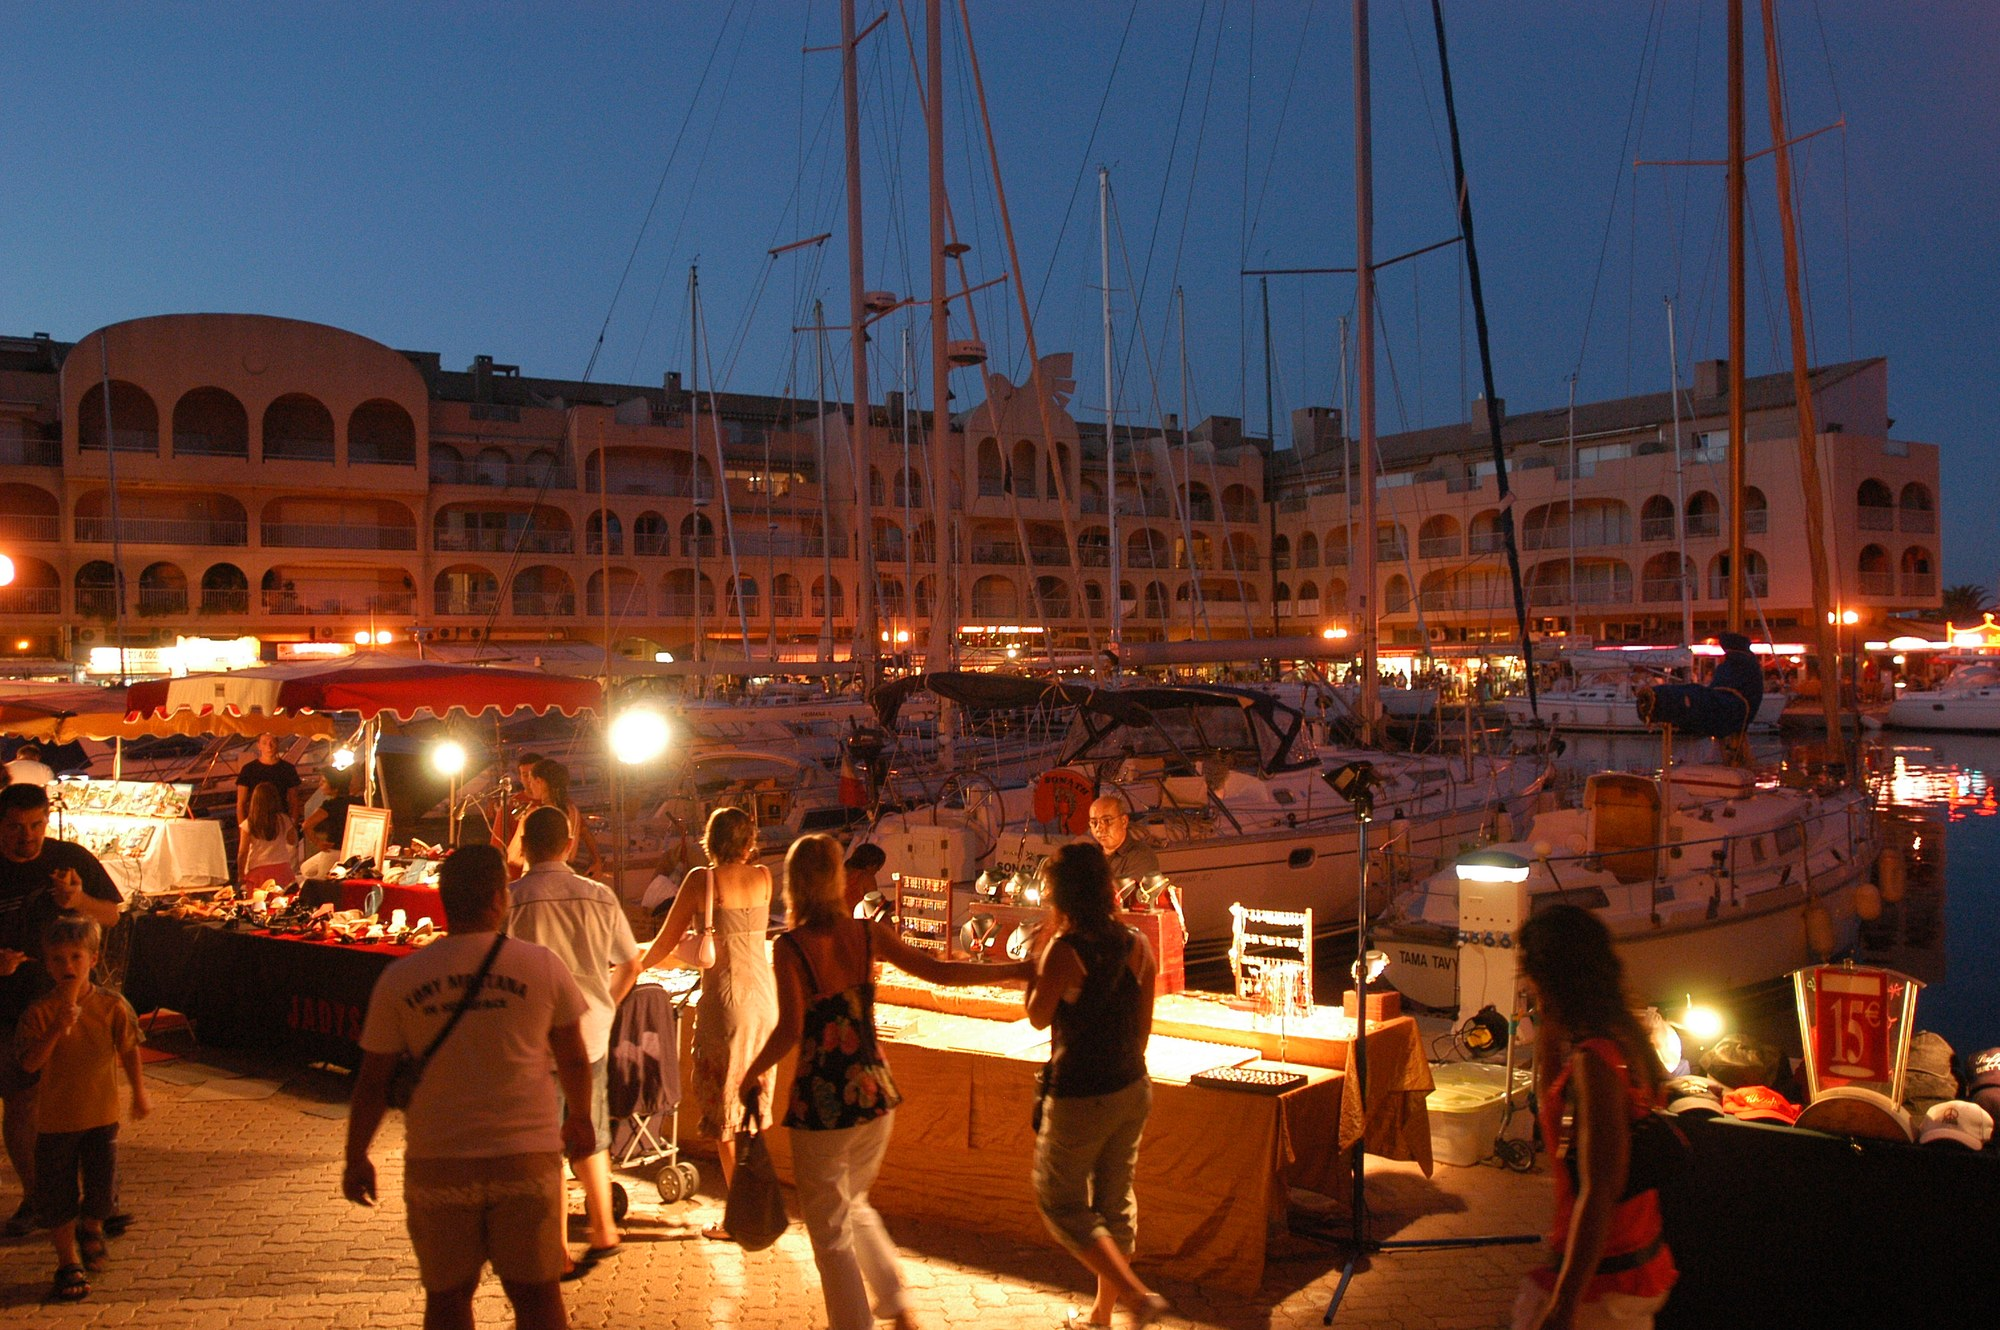 Night market in Hyeres port